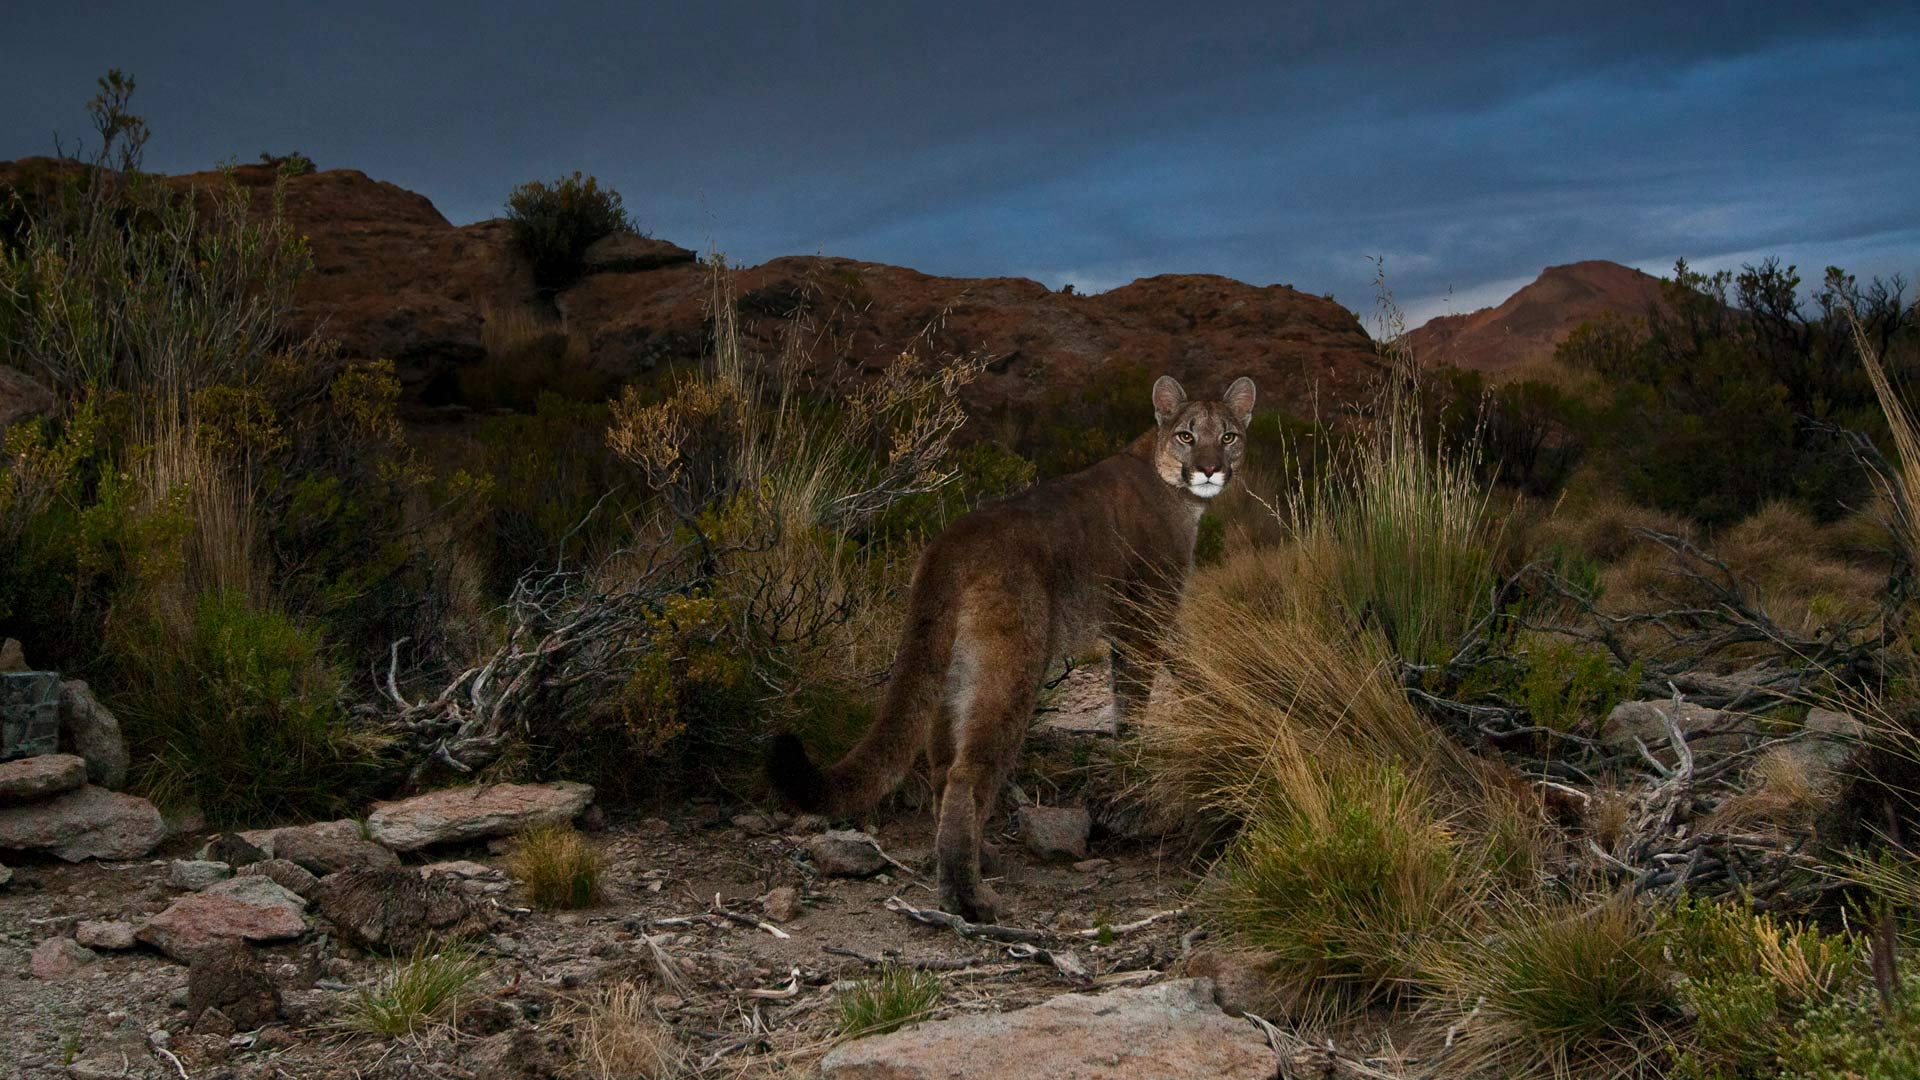 Cougar in the Andes of northwestern Argentina (© Sebastian Kennerknecht/Minden Pictures)